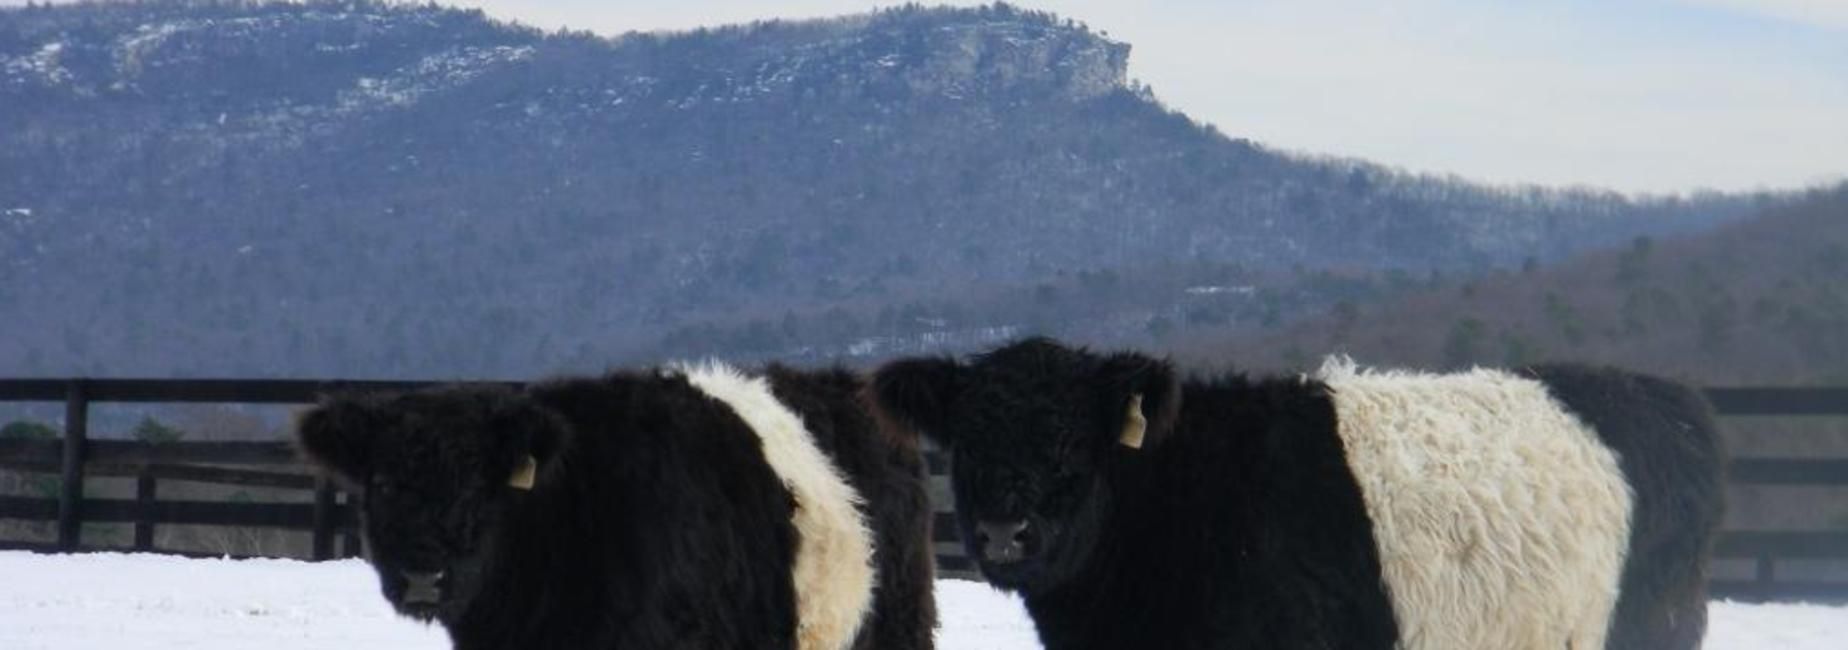 Snow with cows.